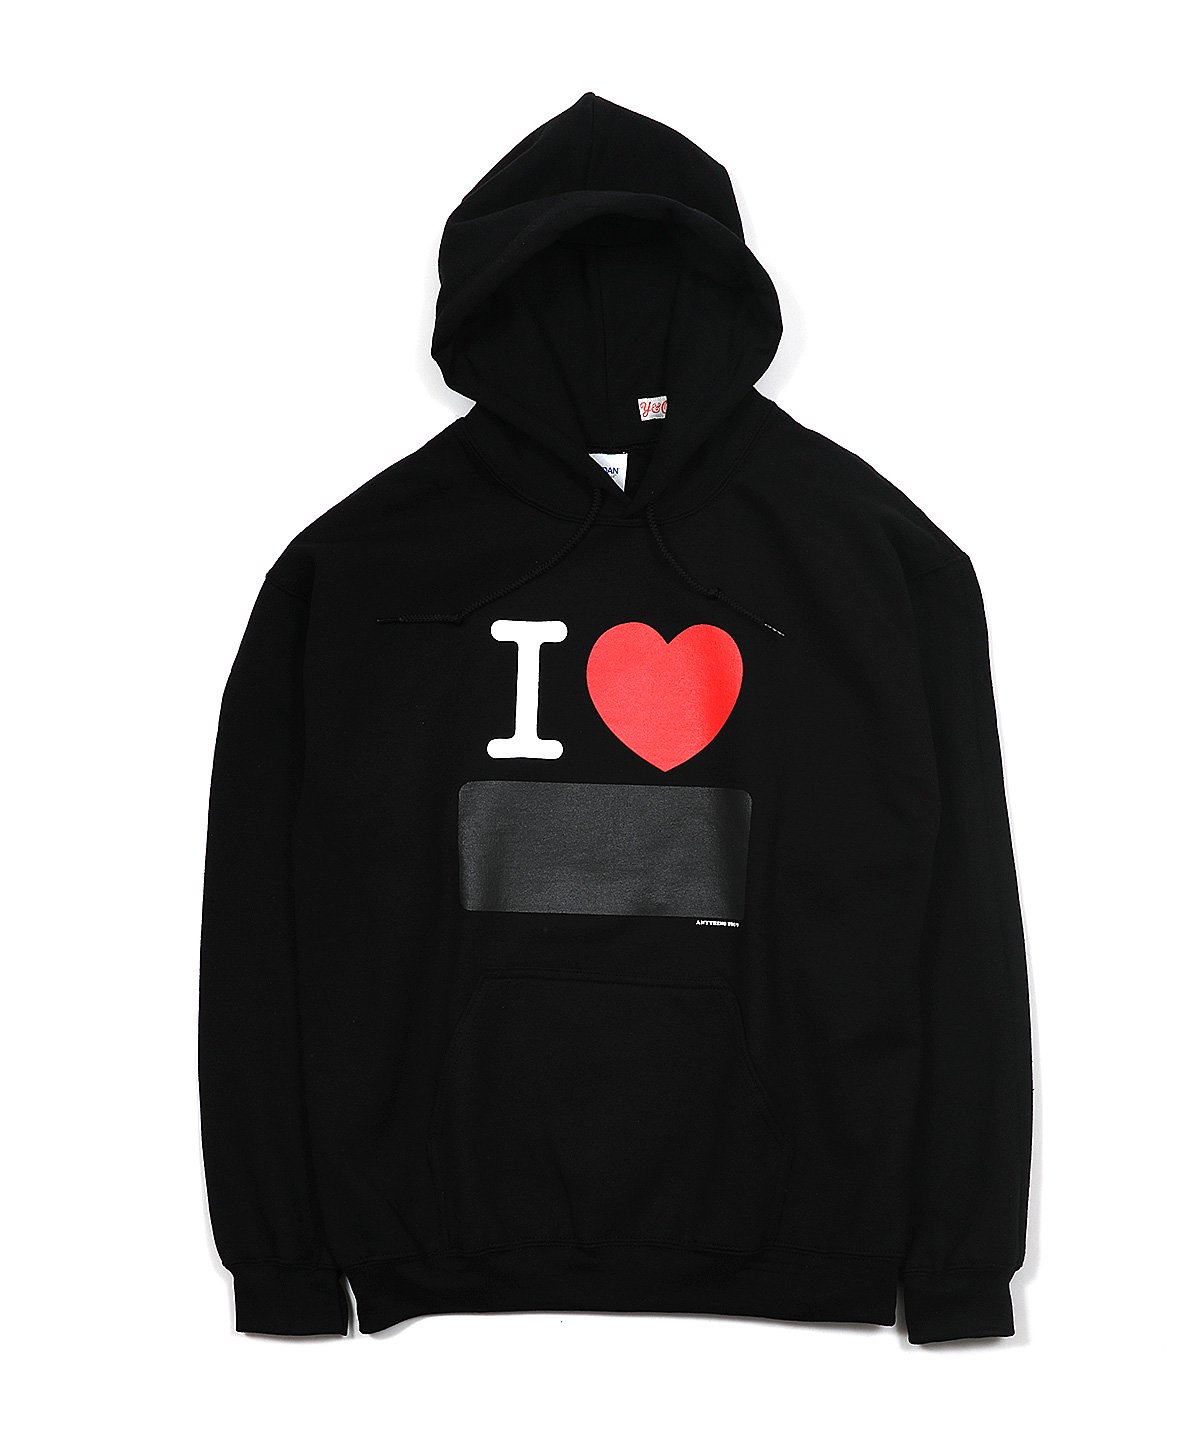 I LOVE ANYTHING HOODIE